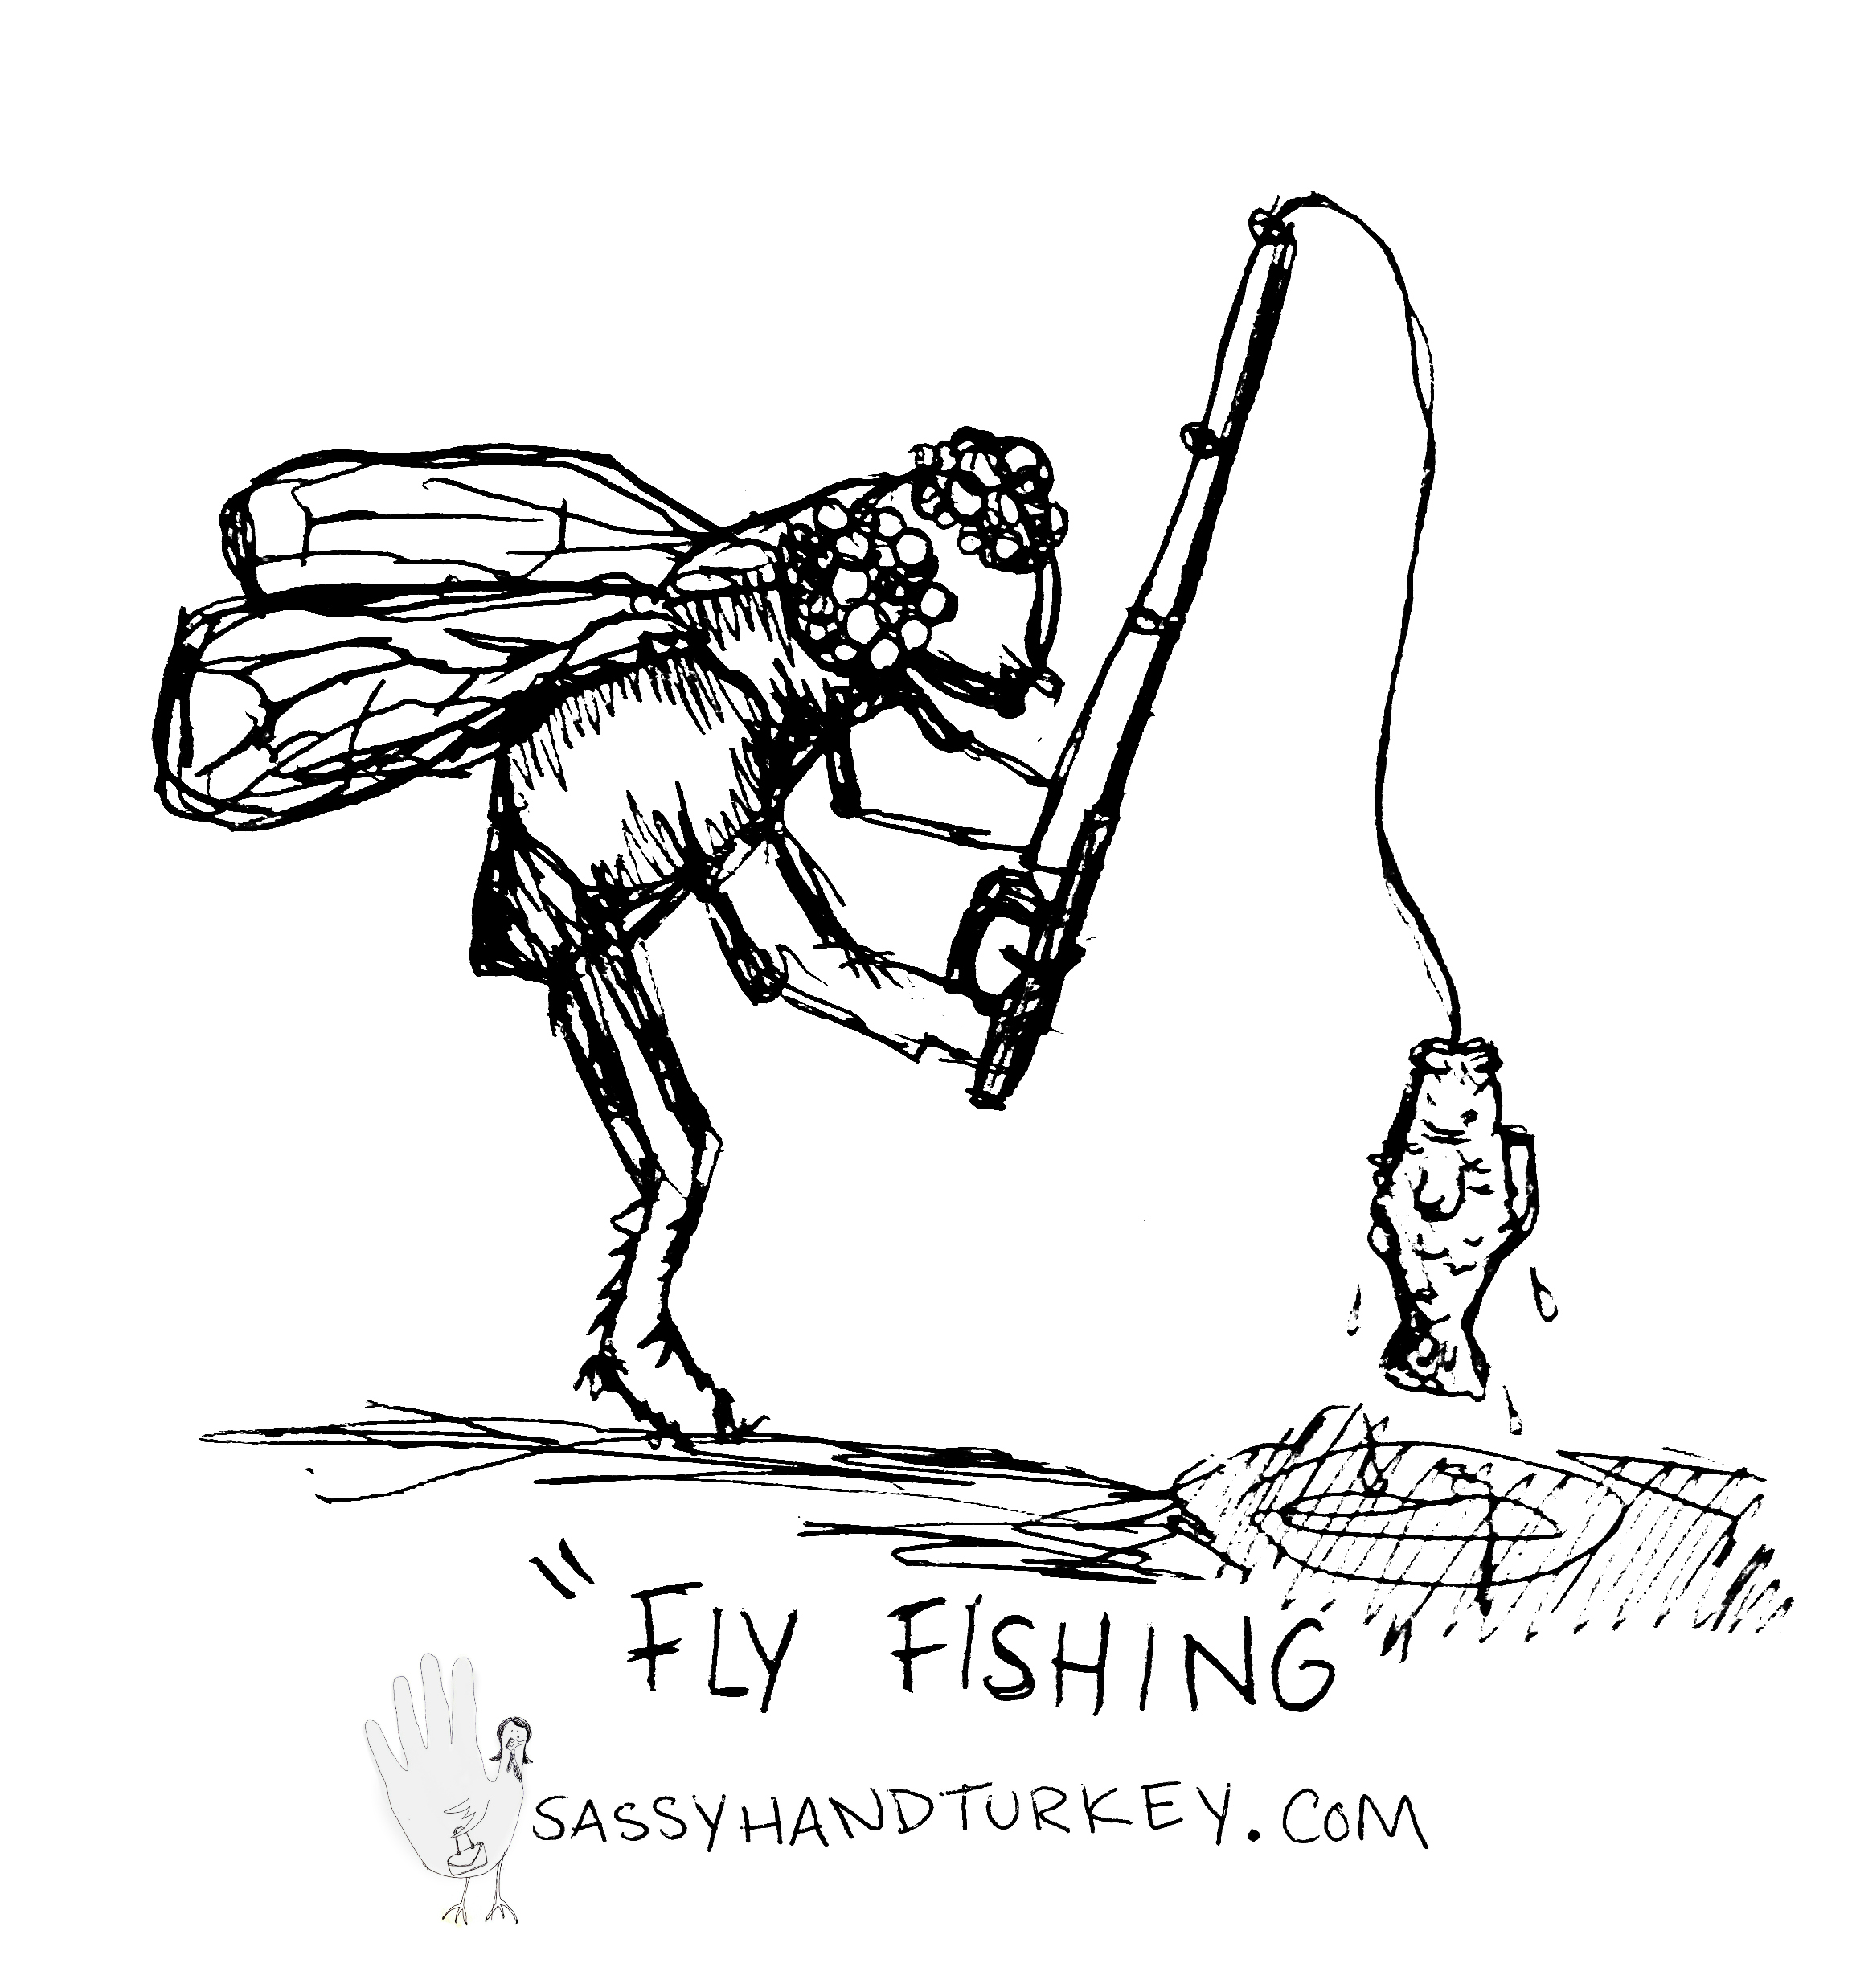 A Fly Fishing